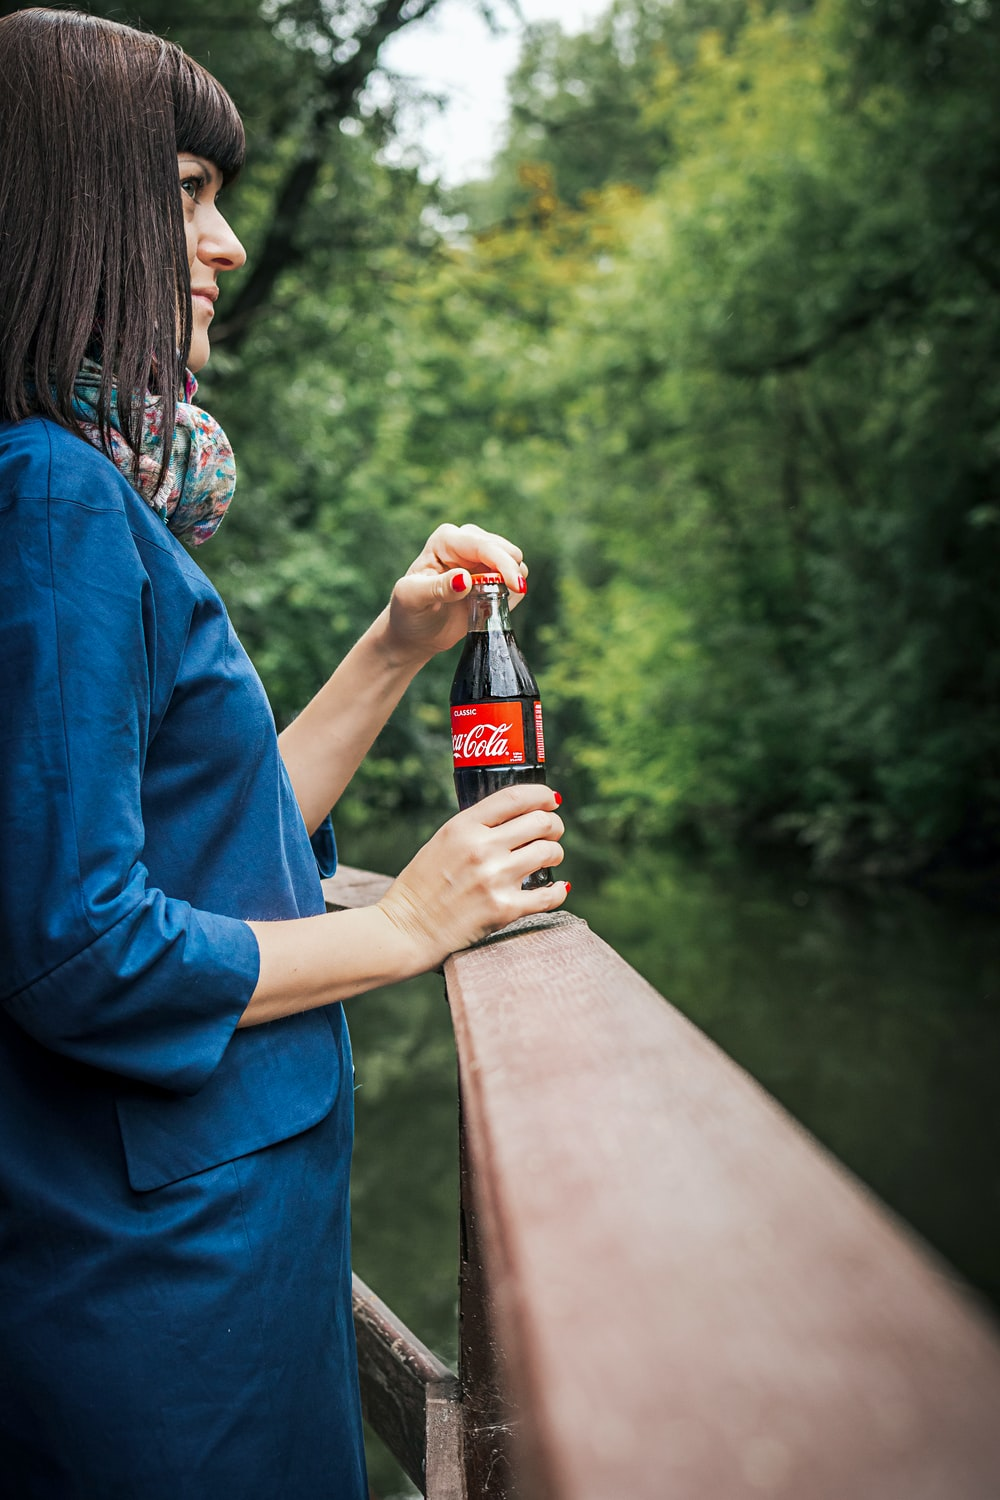 smiling woman standing and holding Coca-Cola soda bottle